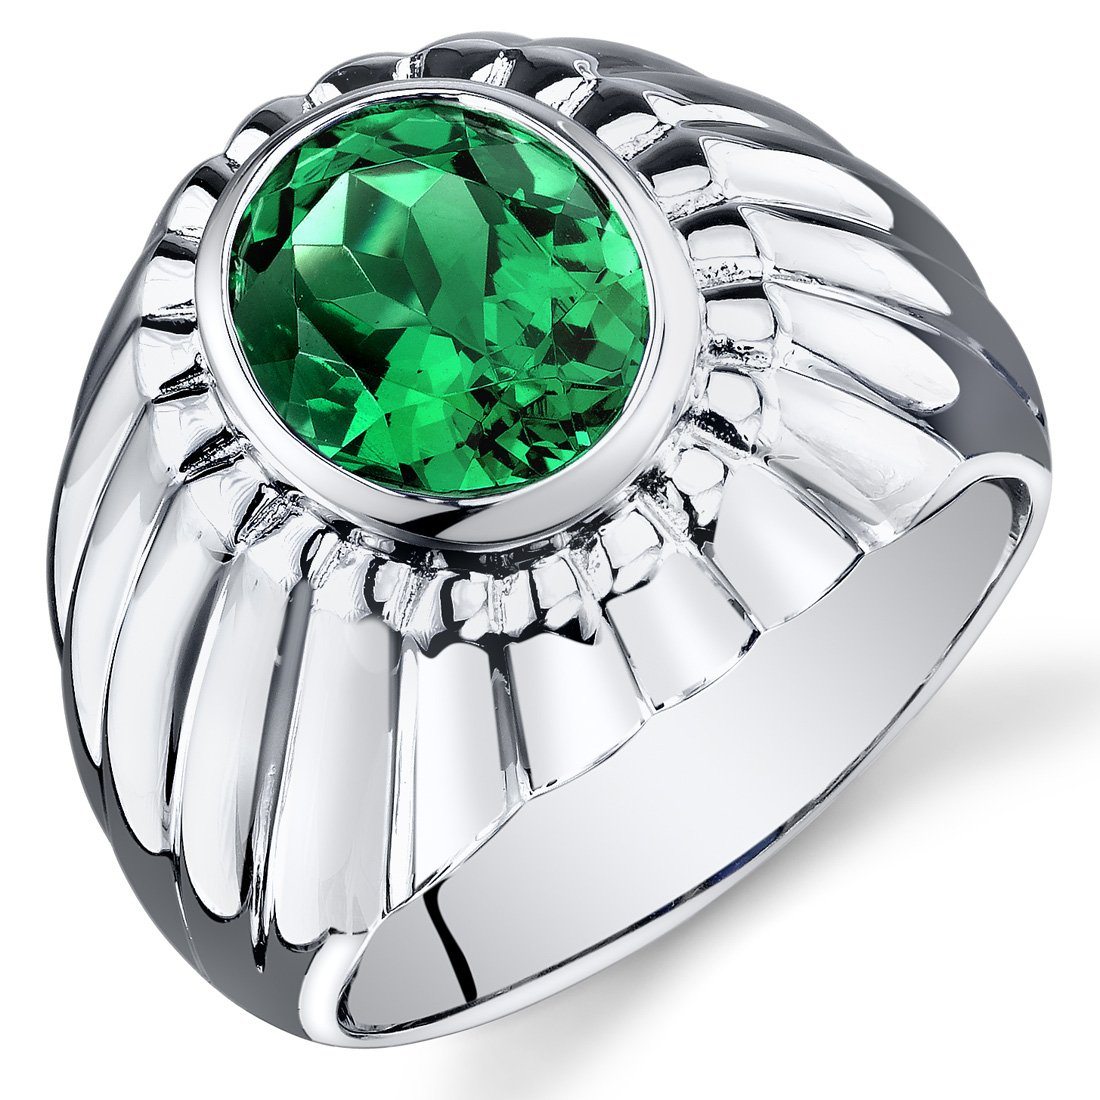 Mens Simulated Emerald Bezel Ring Sterling Silver 3.75 Carats Size 11 by Peora (Image #1)